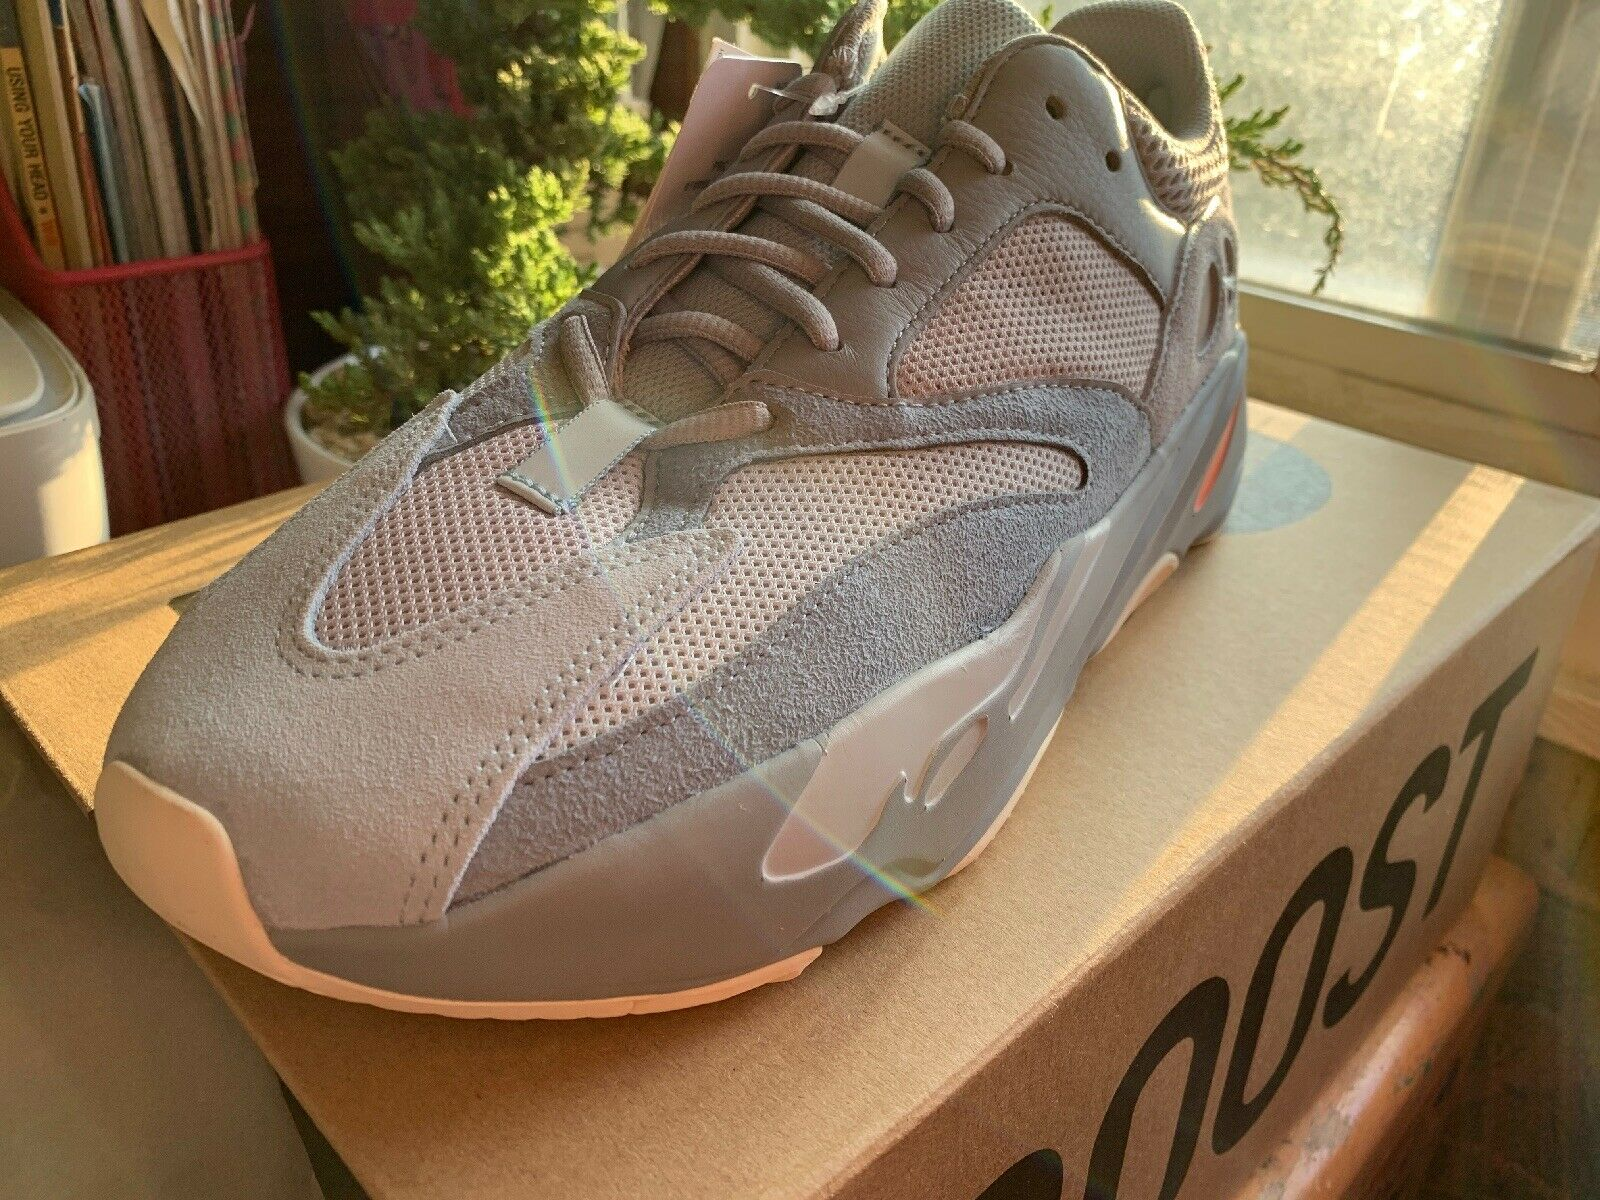 Adidas Yeezy Boost 700 Inertia Size 11 Mens New In Box